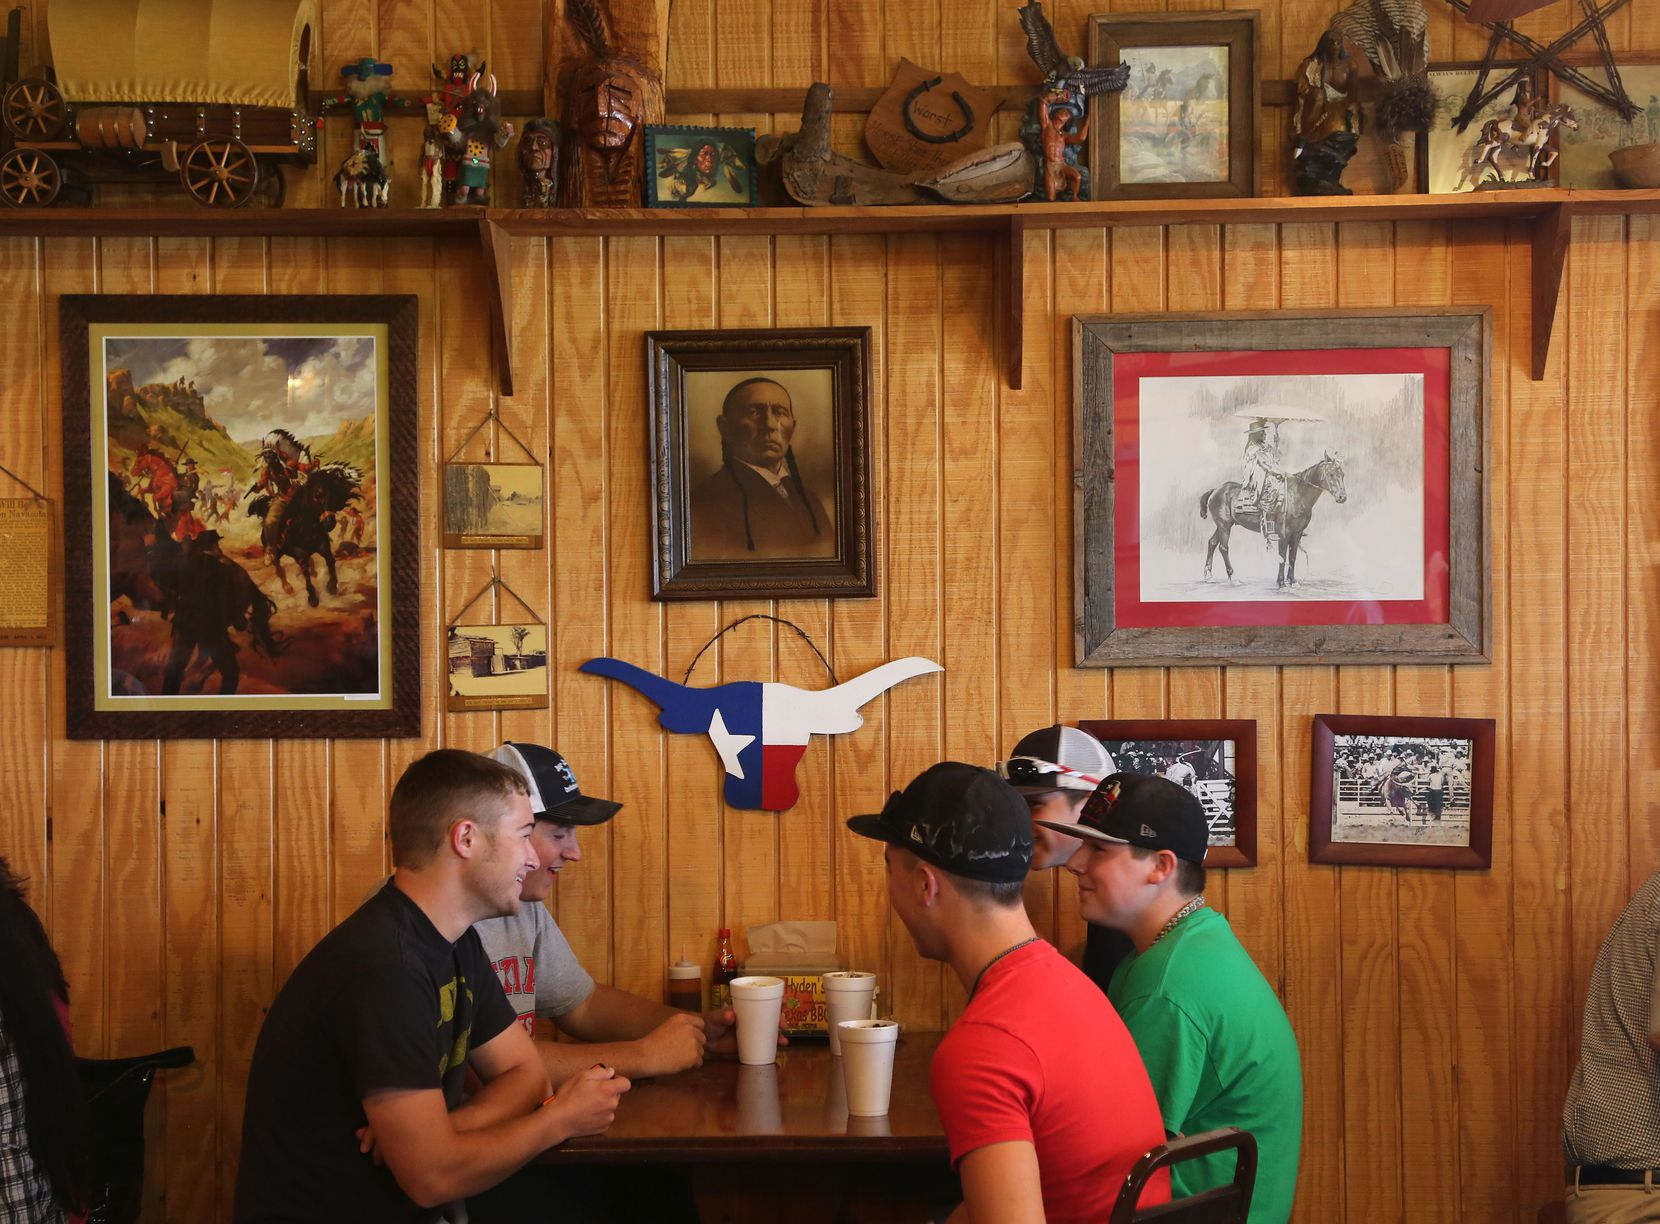 Diners eat at Kirby's Barbeque in Mexia. Some of the photos depict the life of Comanche chief Quanah Parker, whose mother Cynthia Ann Parker was kidnapped during the raid of Fort Parker, which is right outside Mexia.